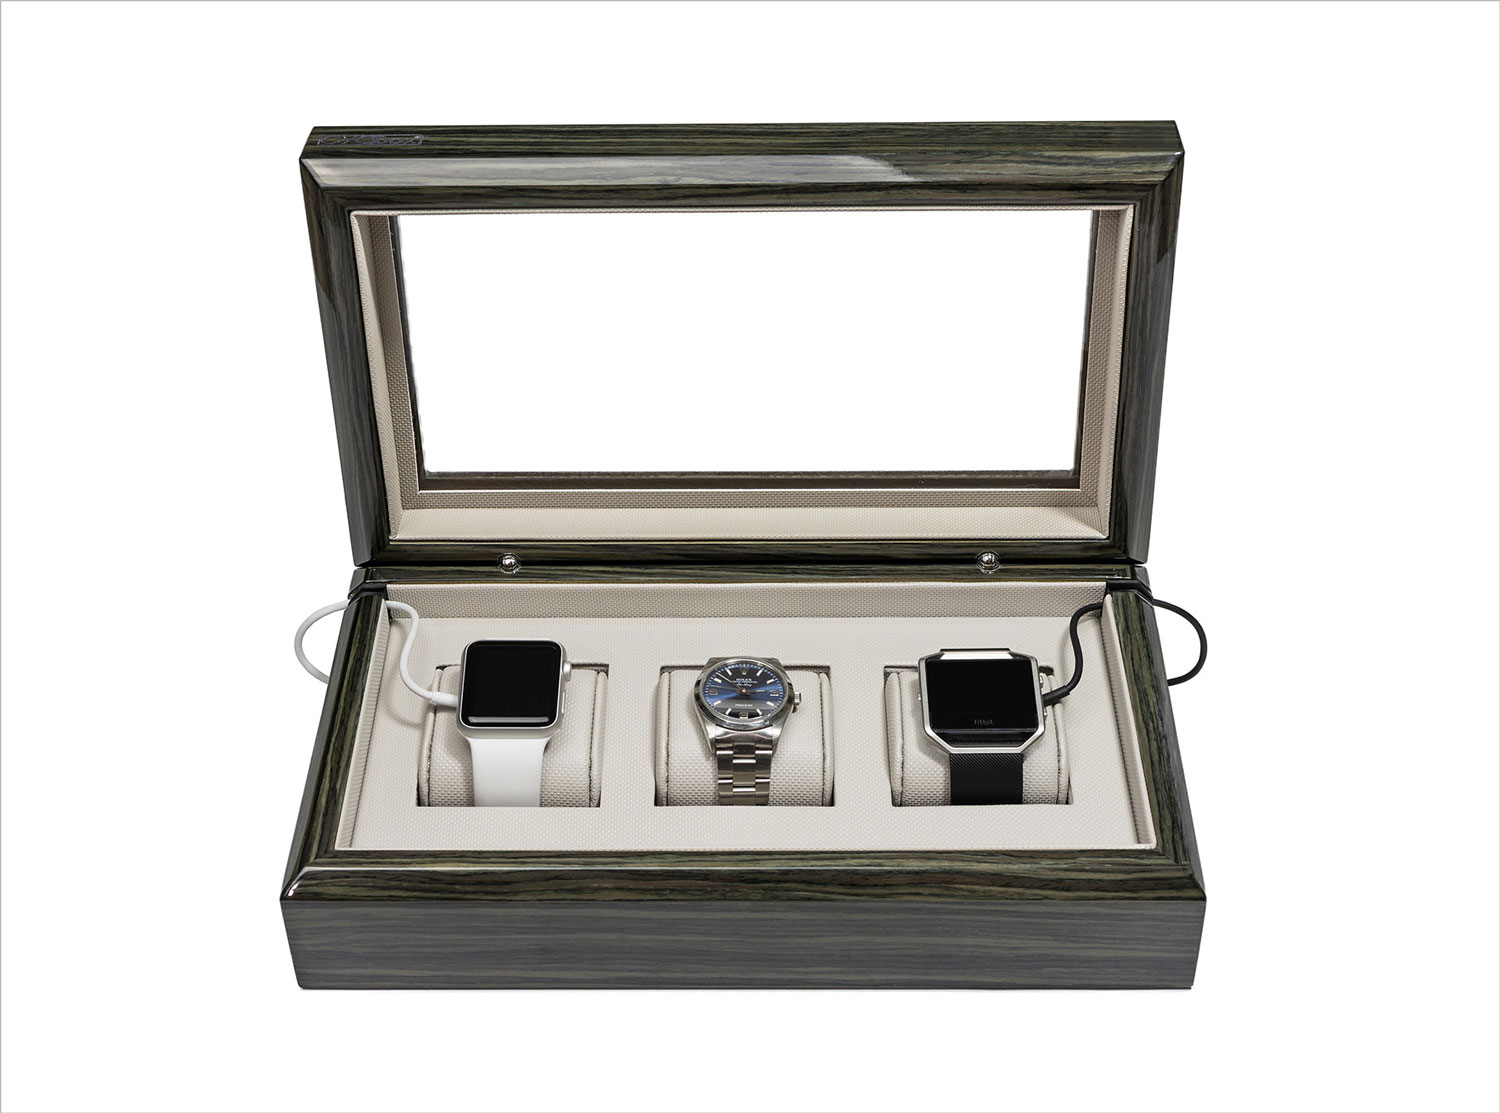 Zebra wood watch box from gearys oyobox holiday gift ideas for him